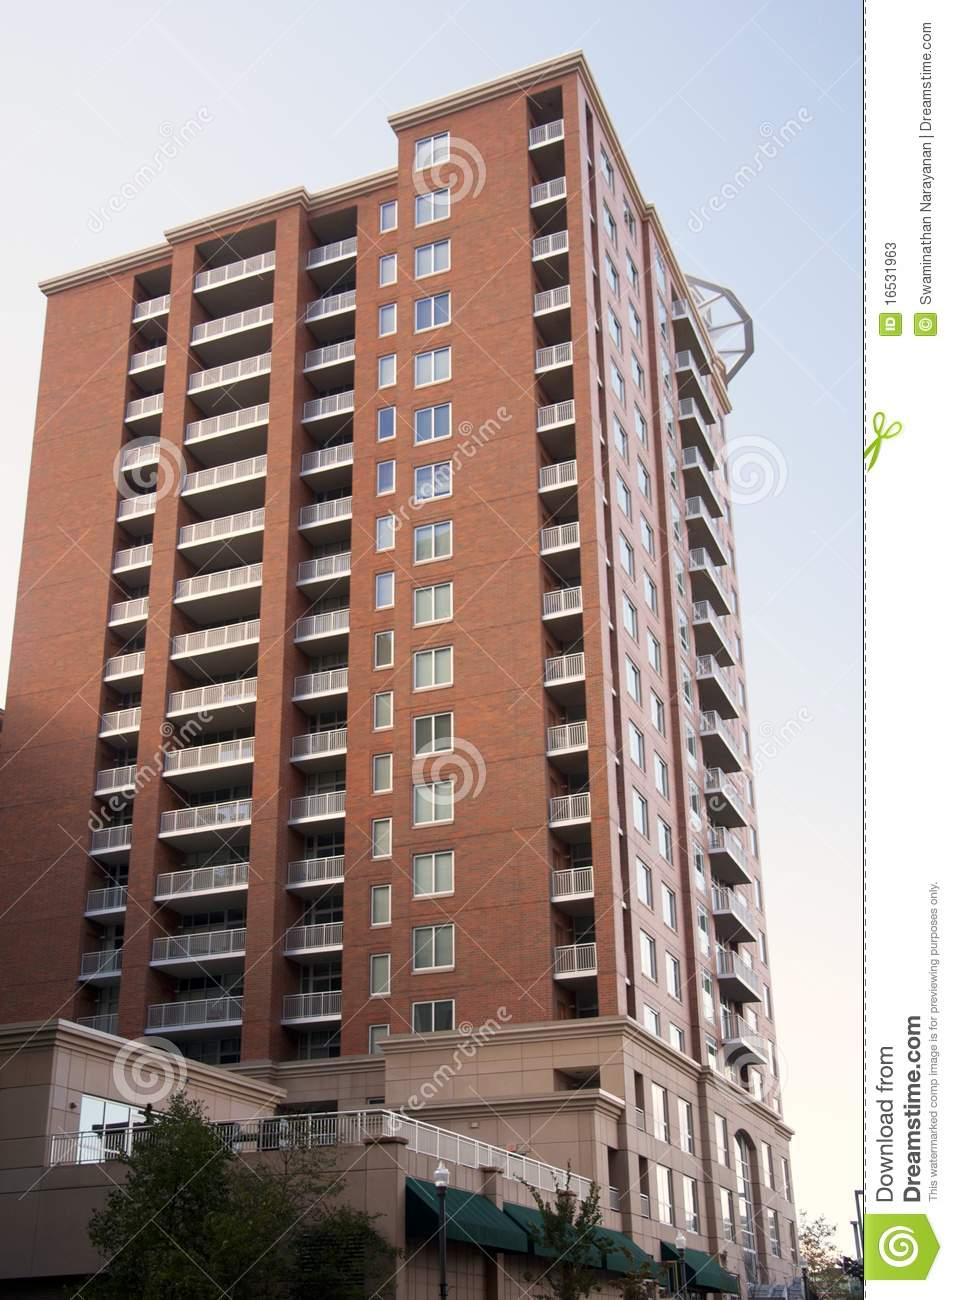 Brick Apartment Building Illustration. Brick building stock image  Image of apartment brick 16531963